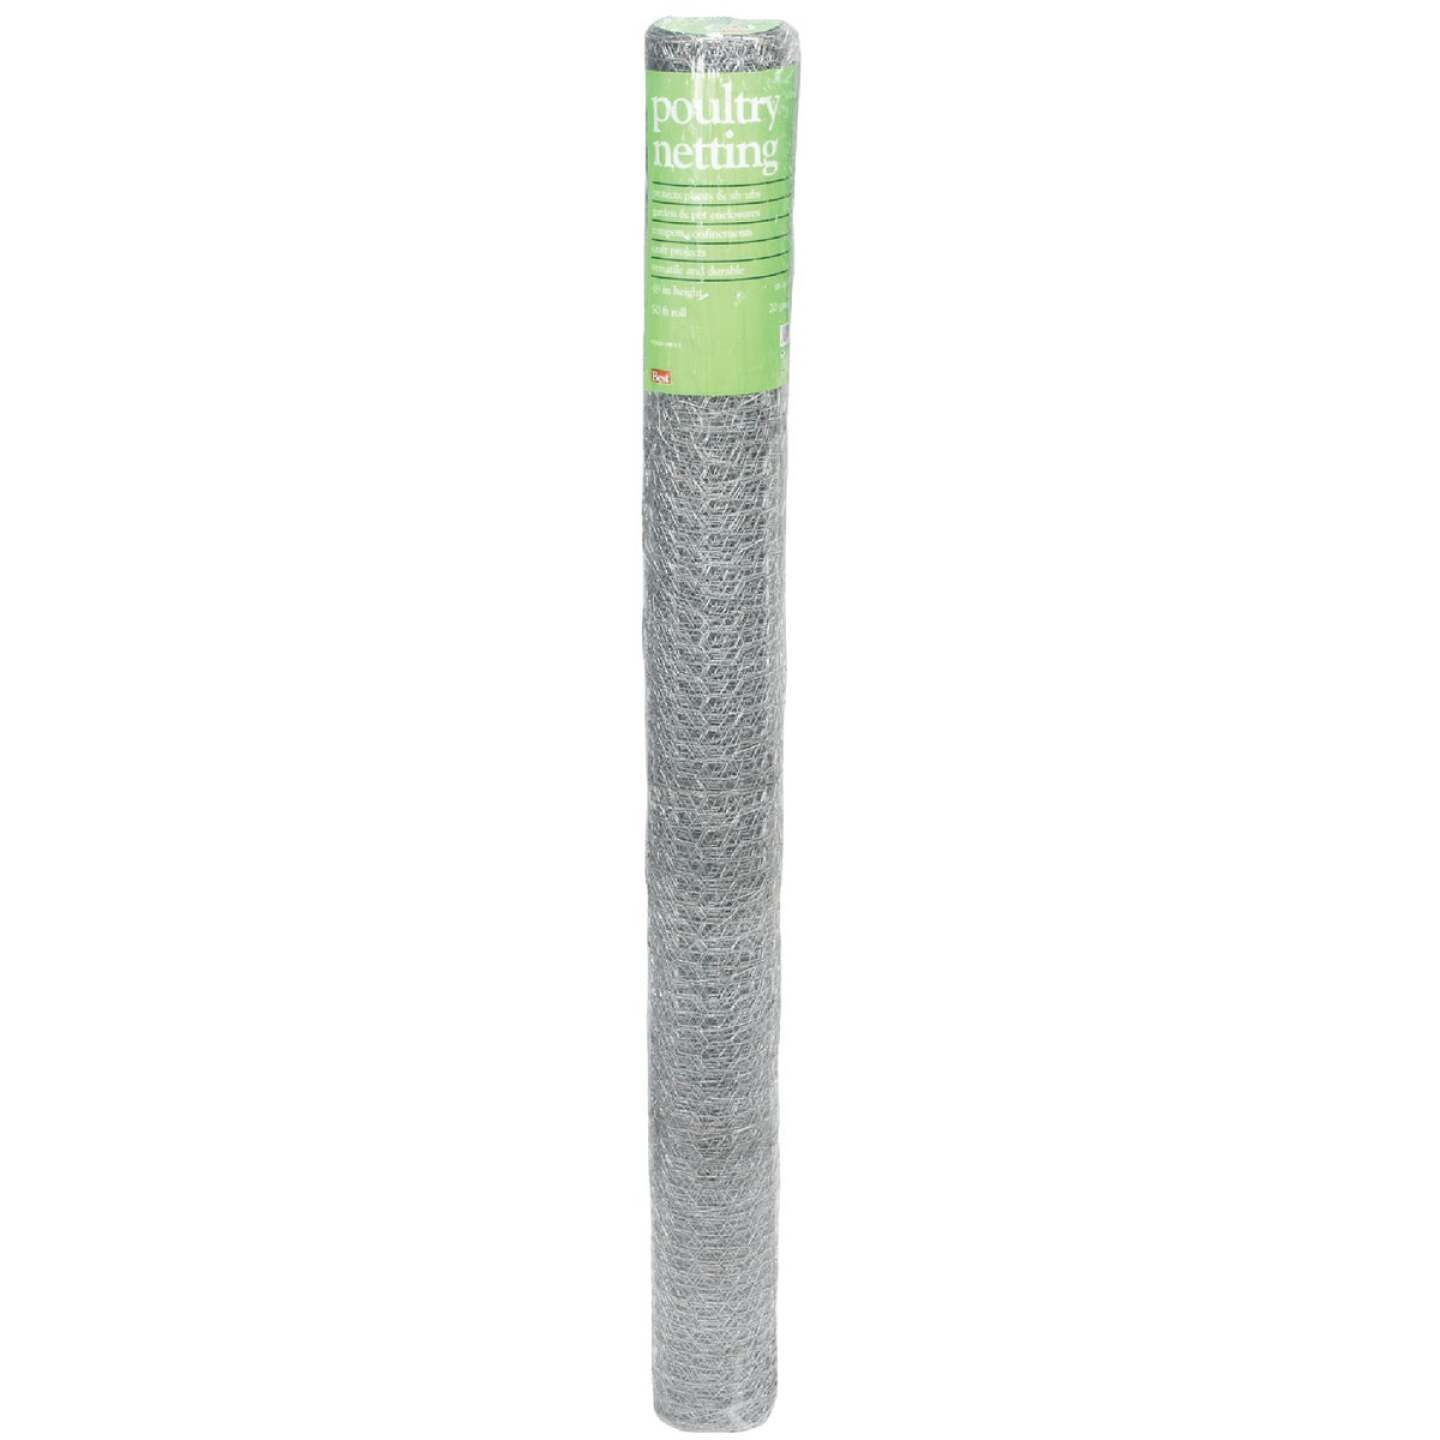 Do it 1 In. x 48 In. H. x 50 Ft. L. Hexagonal Wire Poultry Netting Image 2